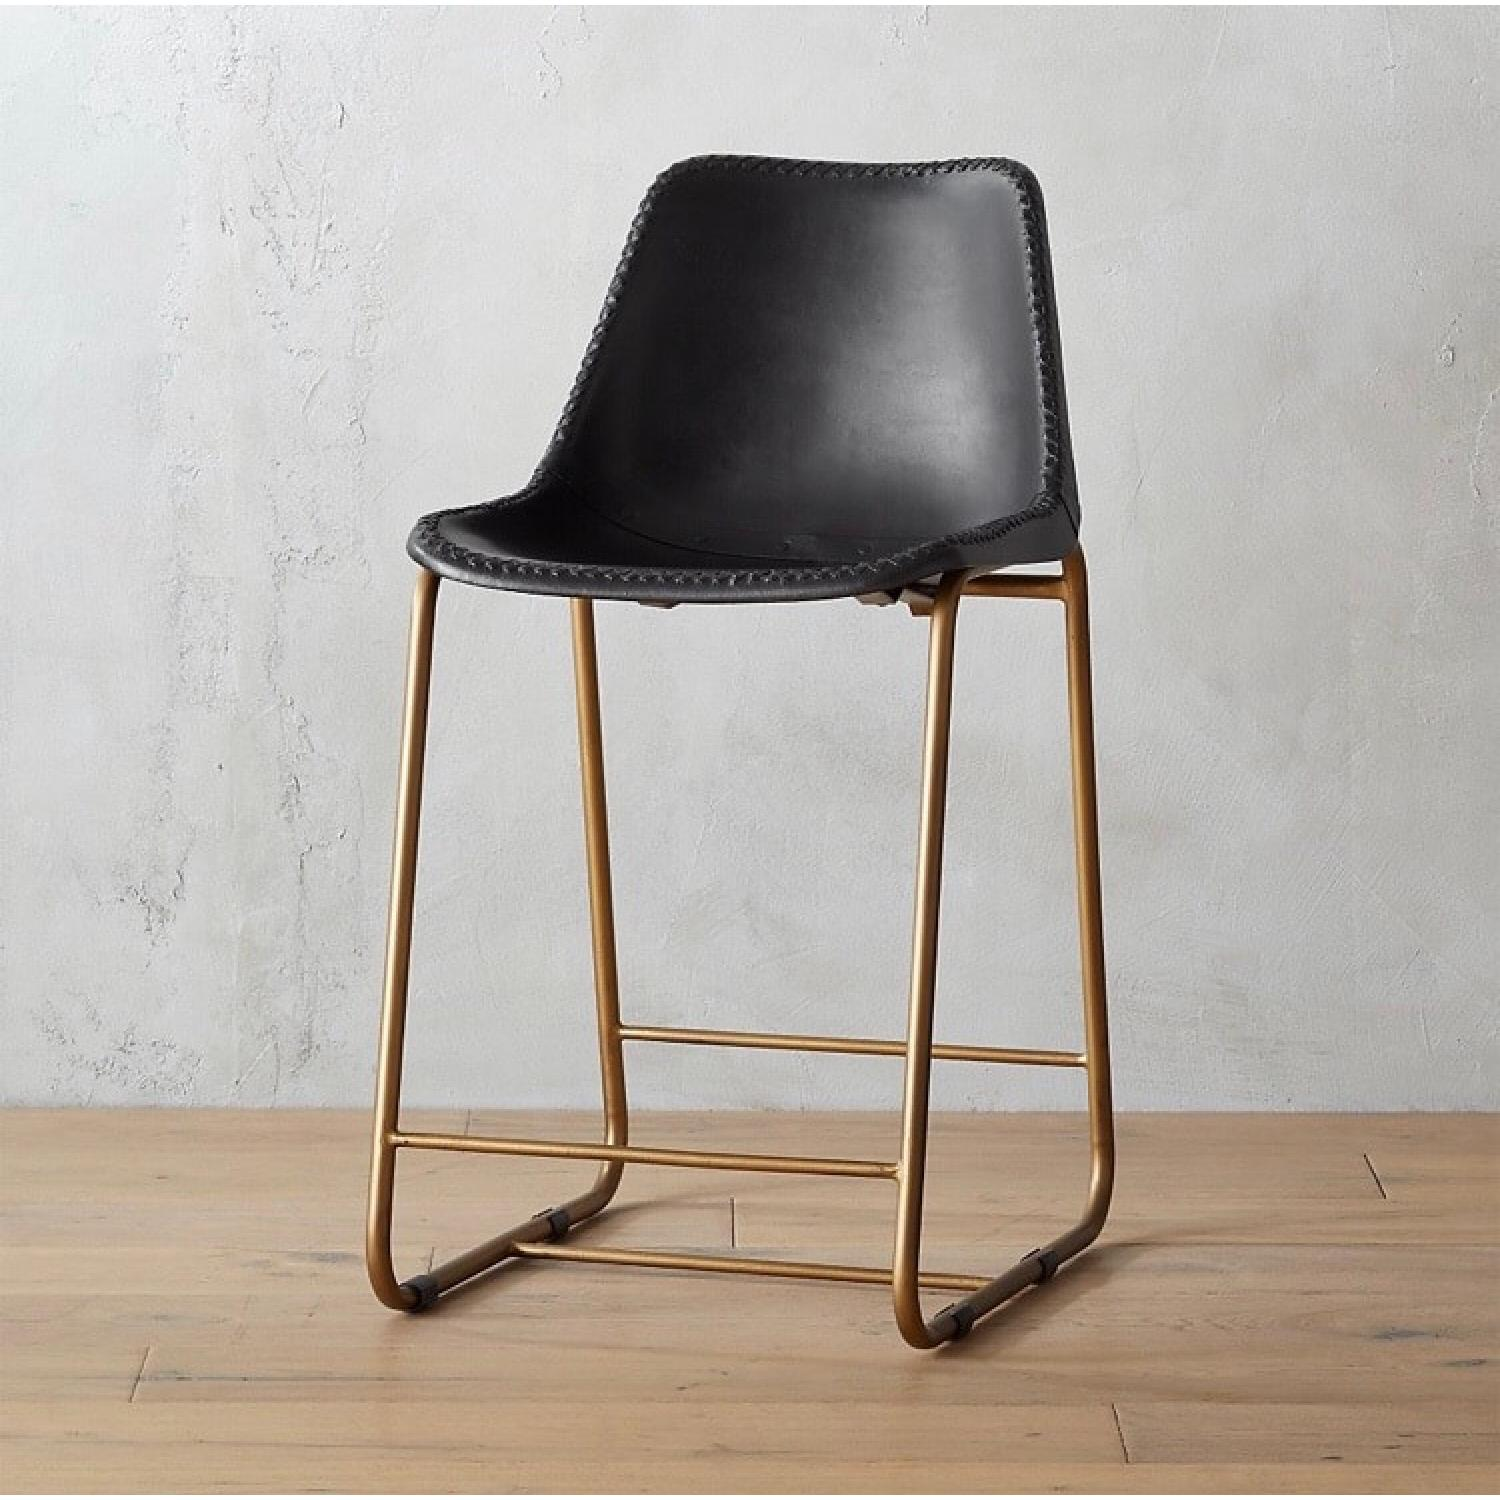 CB2 Roadhouse Black Leather Counter Stools - image-3